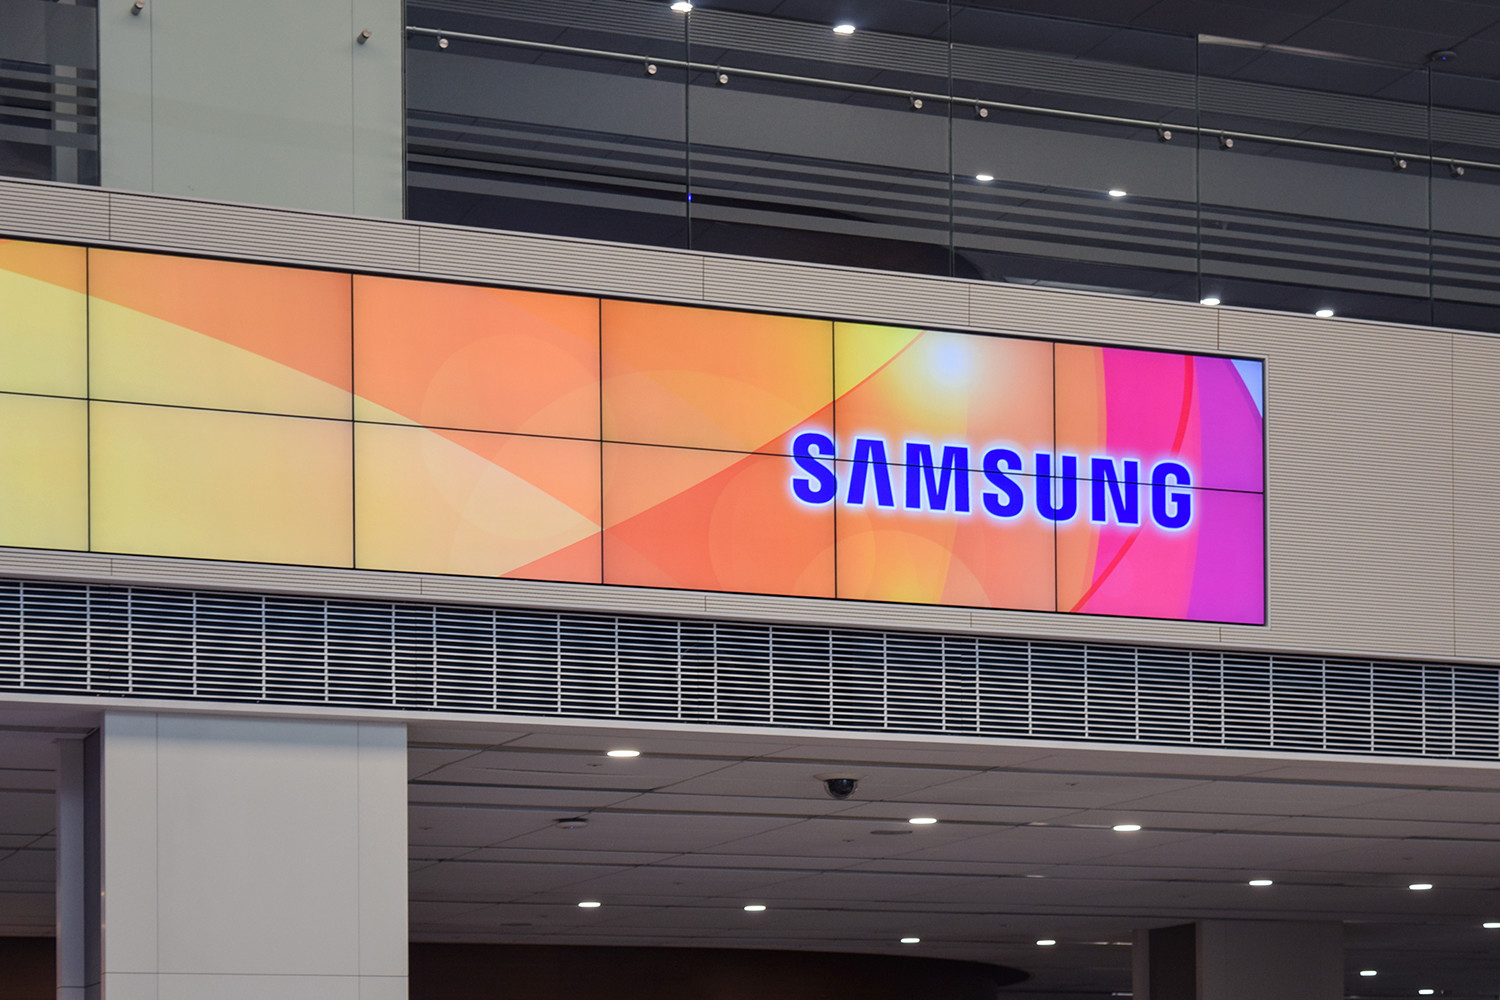 Samsung's Tizen OS Reportedly Riddled With Zero-Day Vulnerabilities